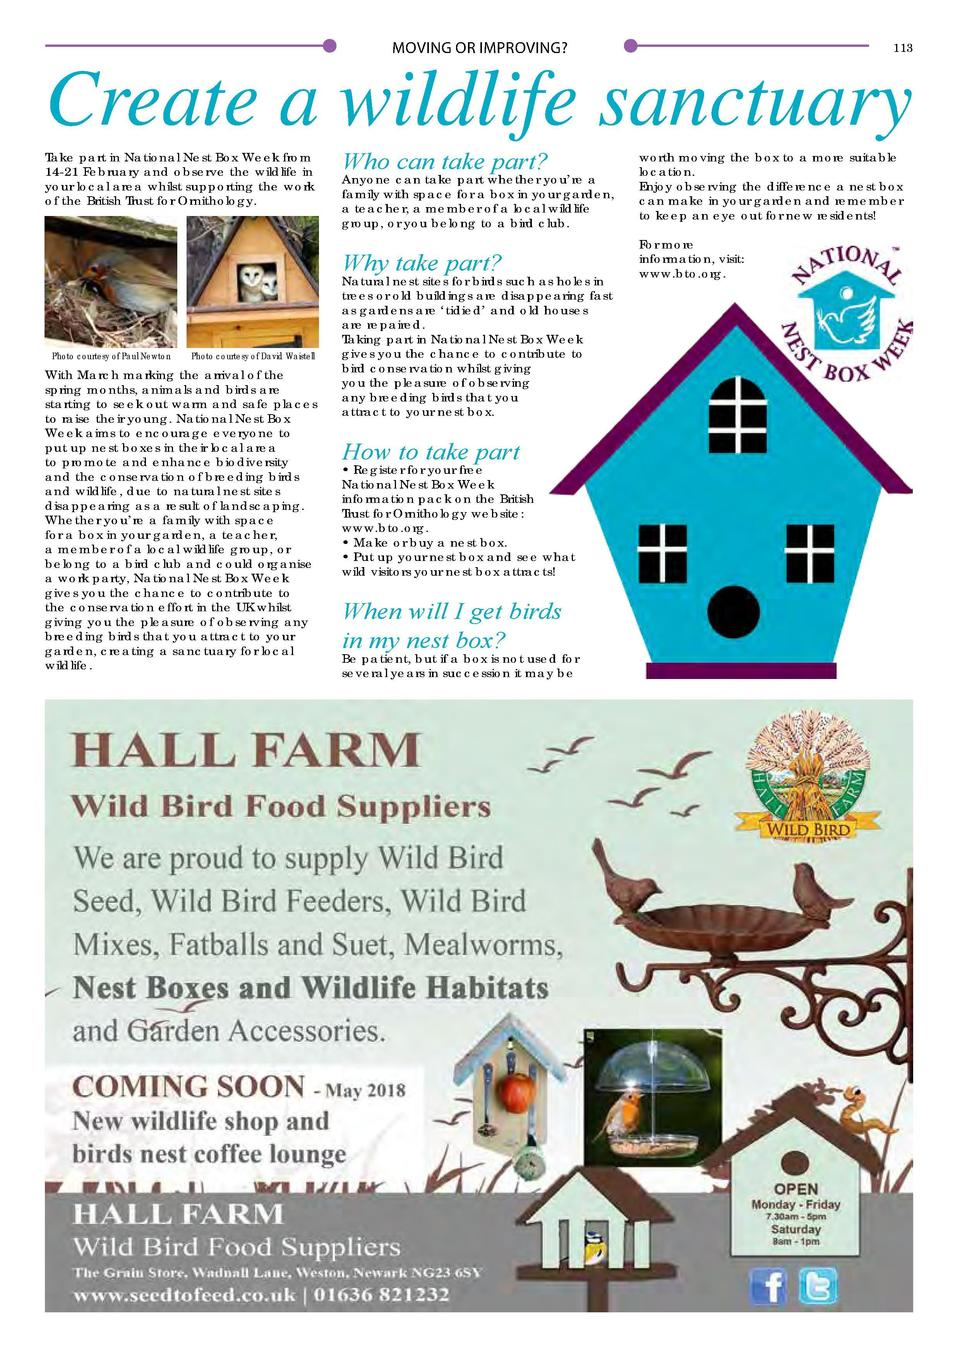 112  MOVING OR IMPROVING   MOVING OR IMPROVING   113  Create a wildlife sanctuary Take part in National Nest Box Week from...